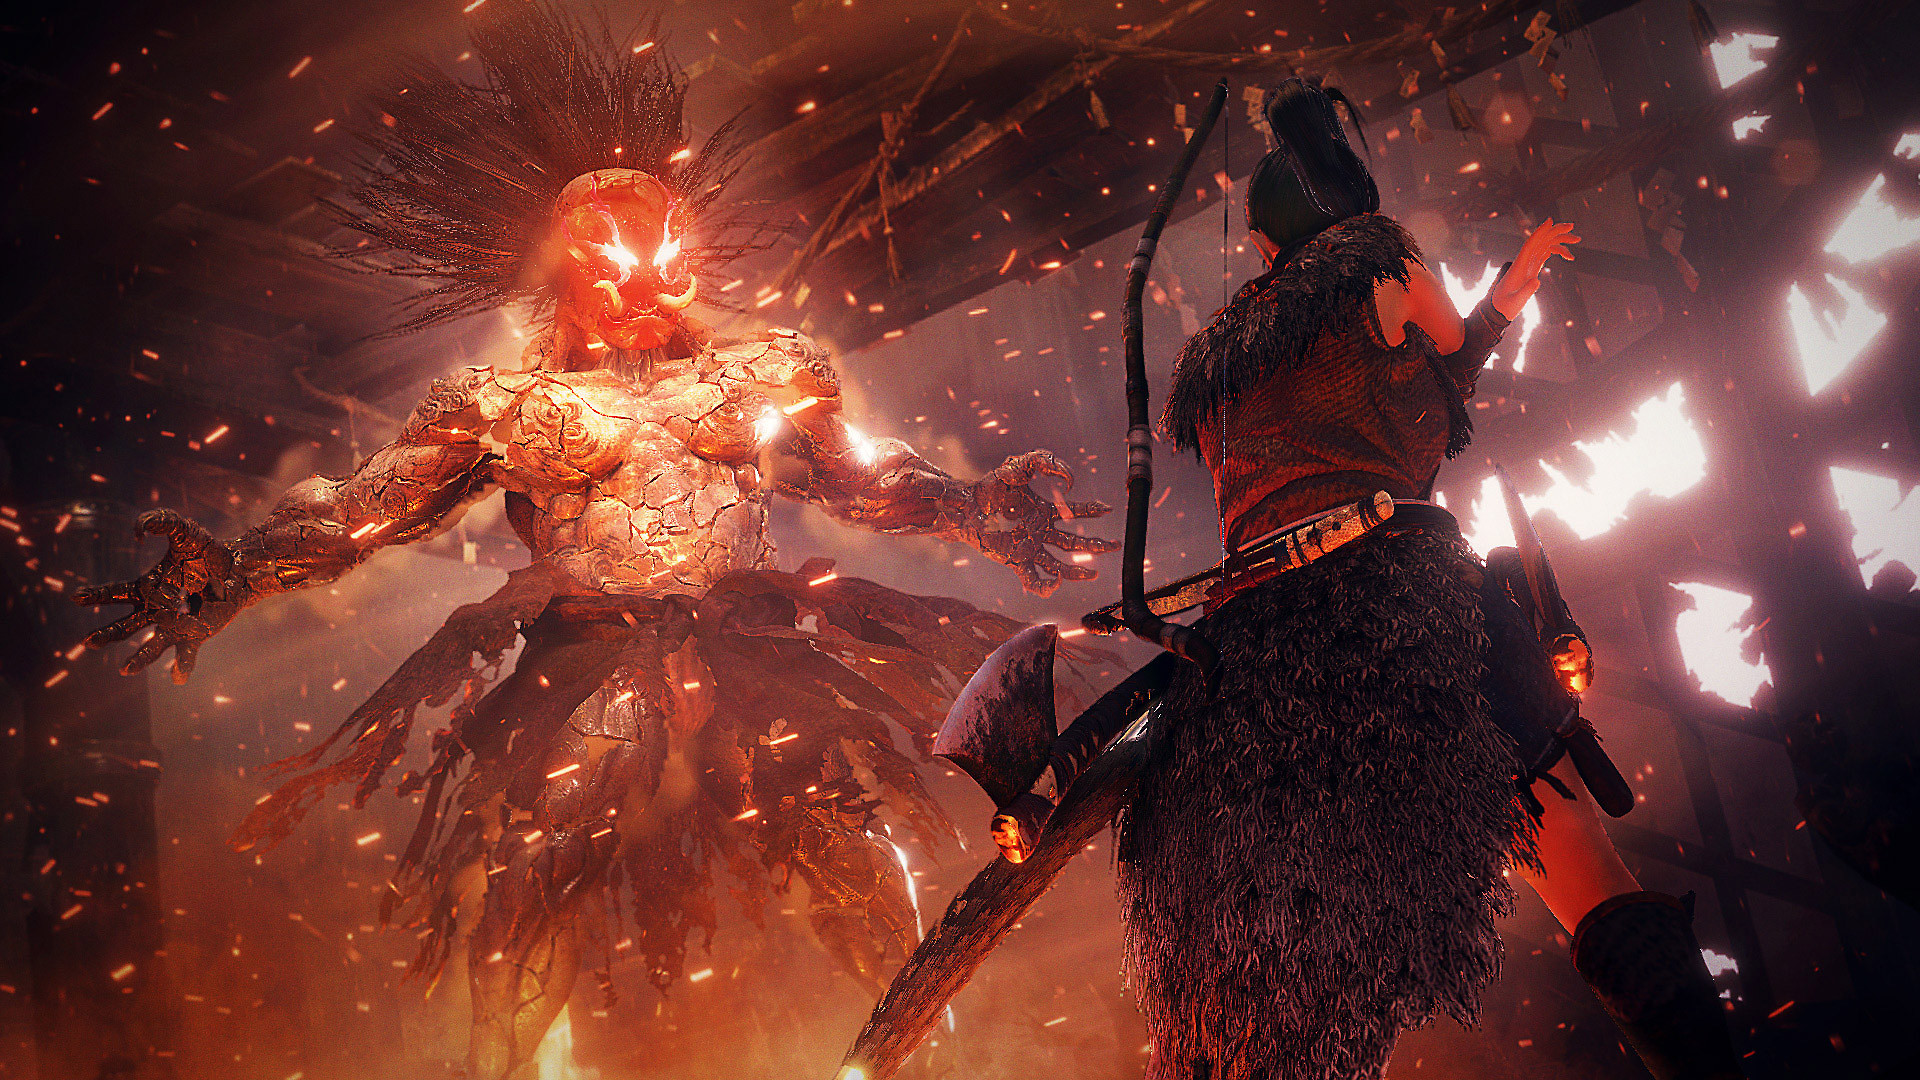 Concept art of Nioh 2's hero, with a bow and arrows, confronting a demon with glowing eyes.